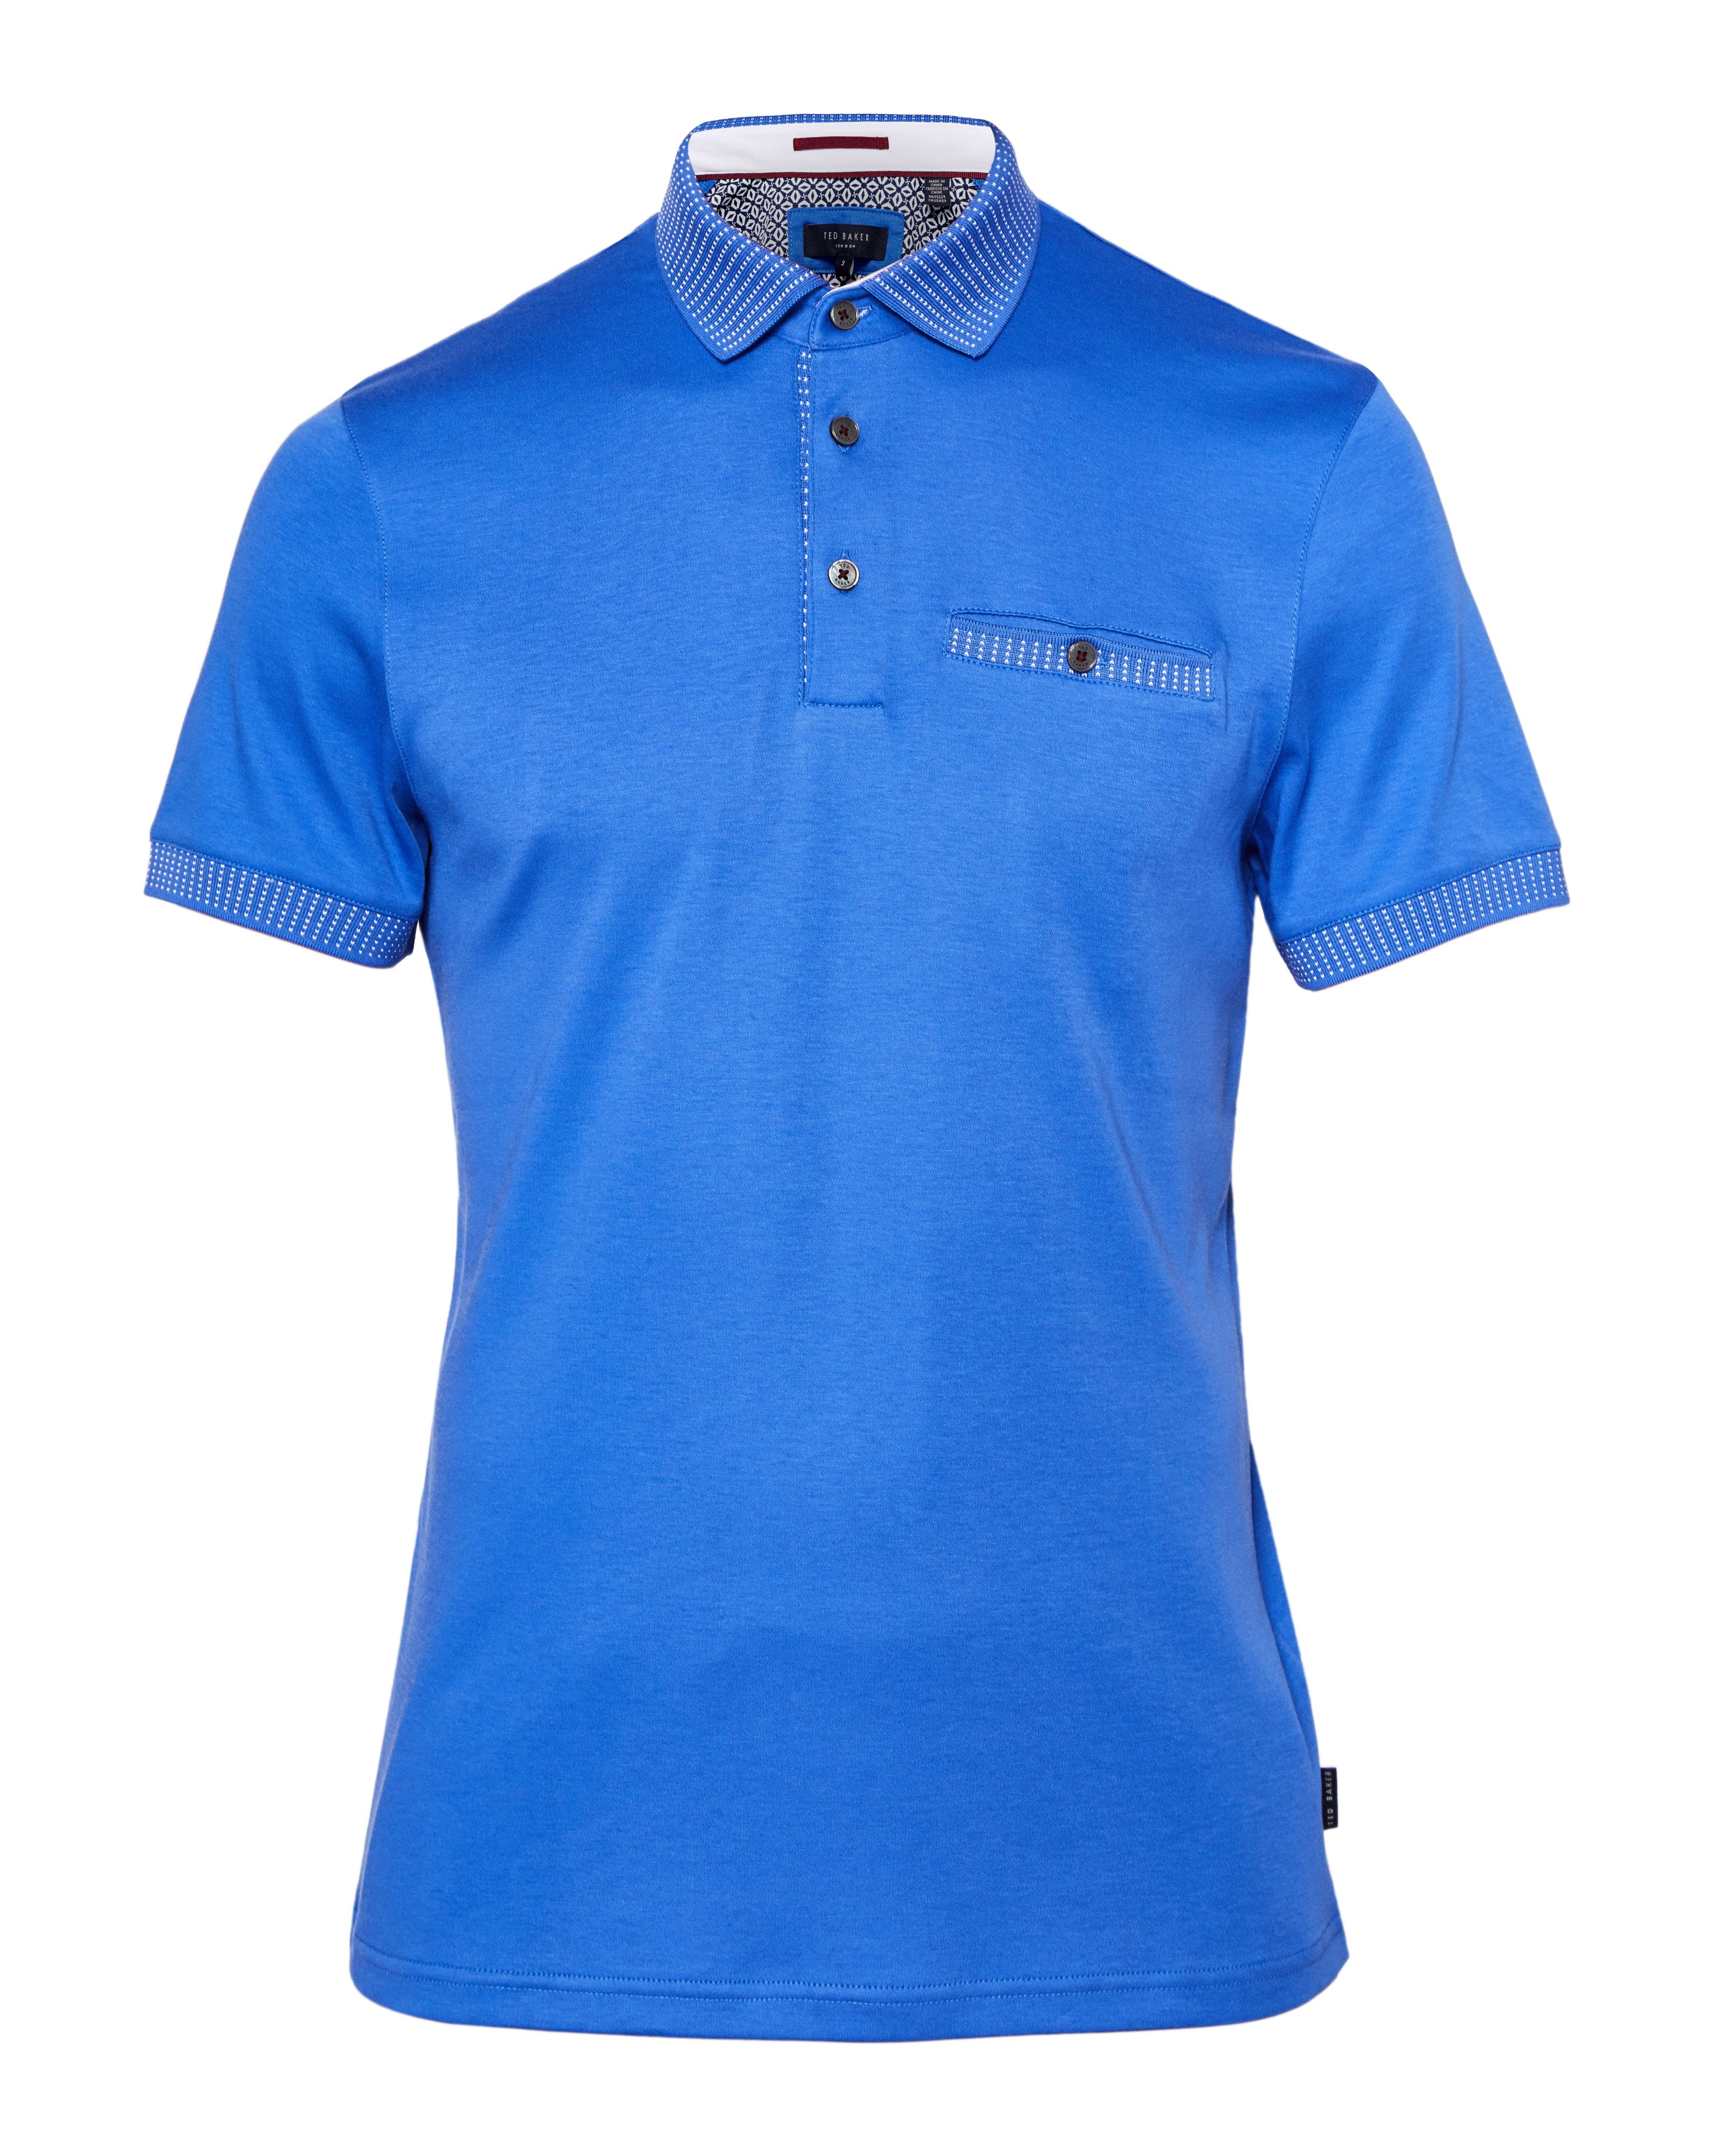 Men's Ted Baker Rickee Soft Solid Colour Polo Shirt, Blue